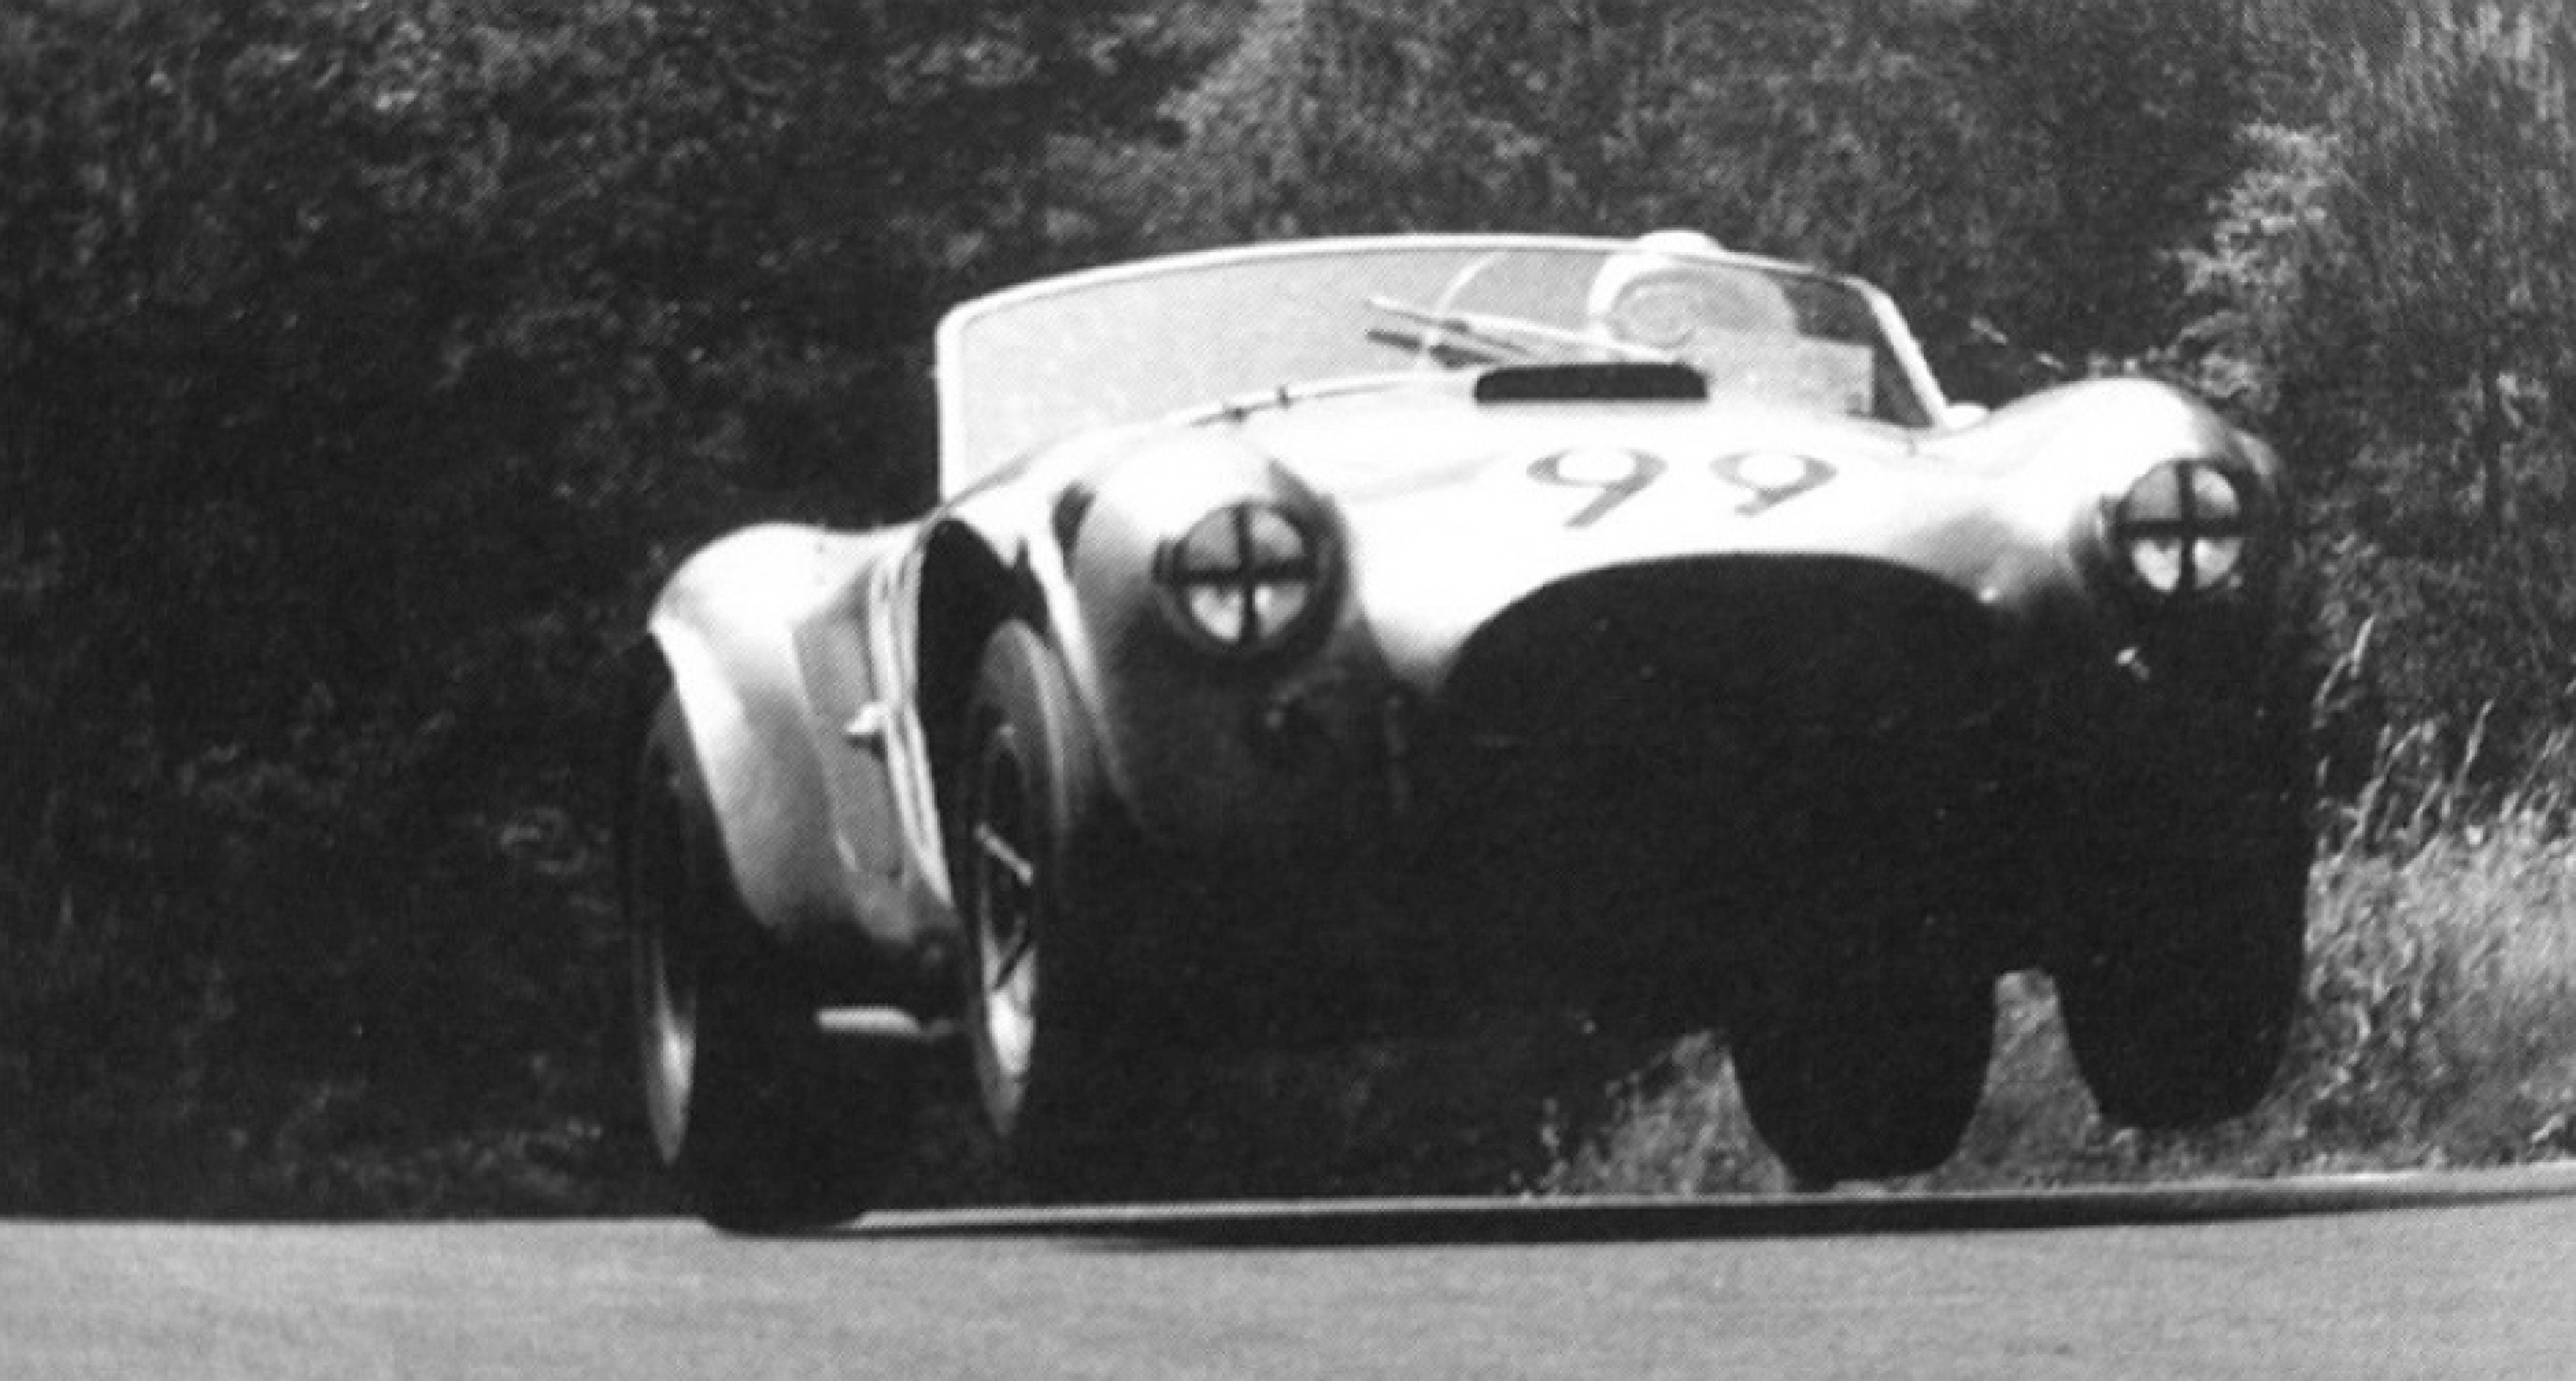 August 31, 1964: Nurburgring 1000 Kms, Germany - Attwood / Schlesser - 23rd